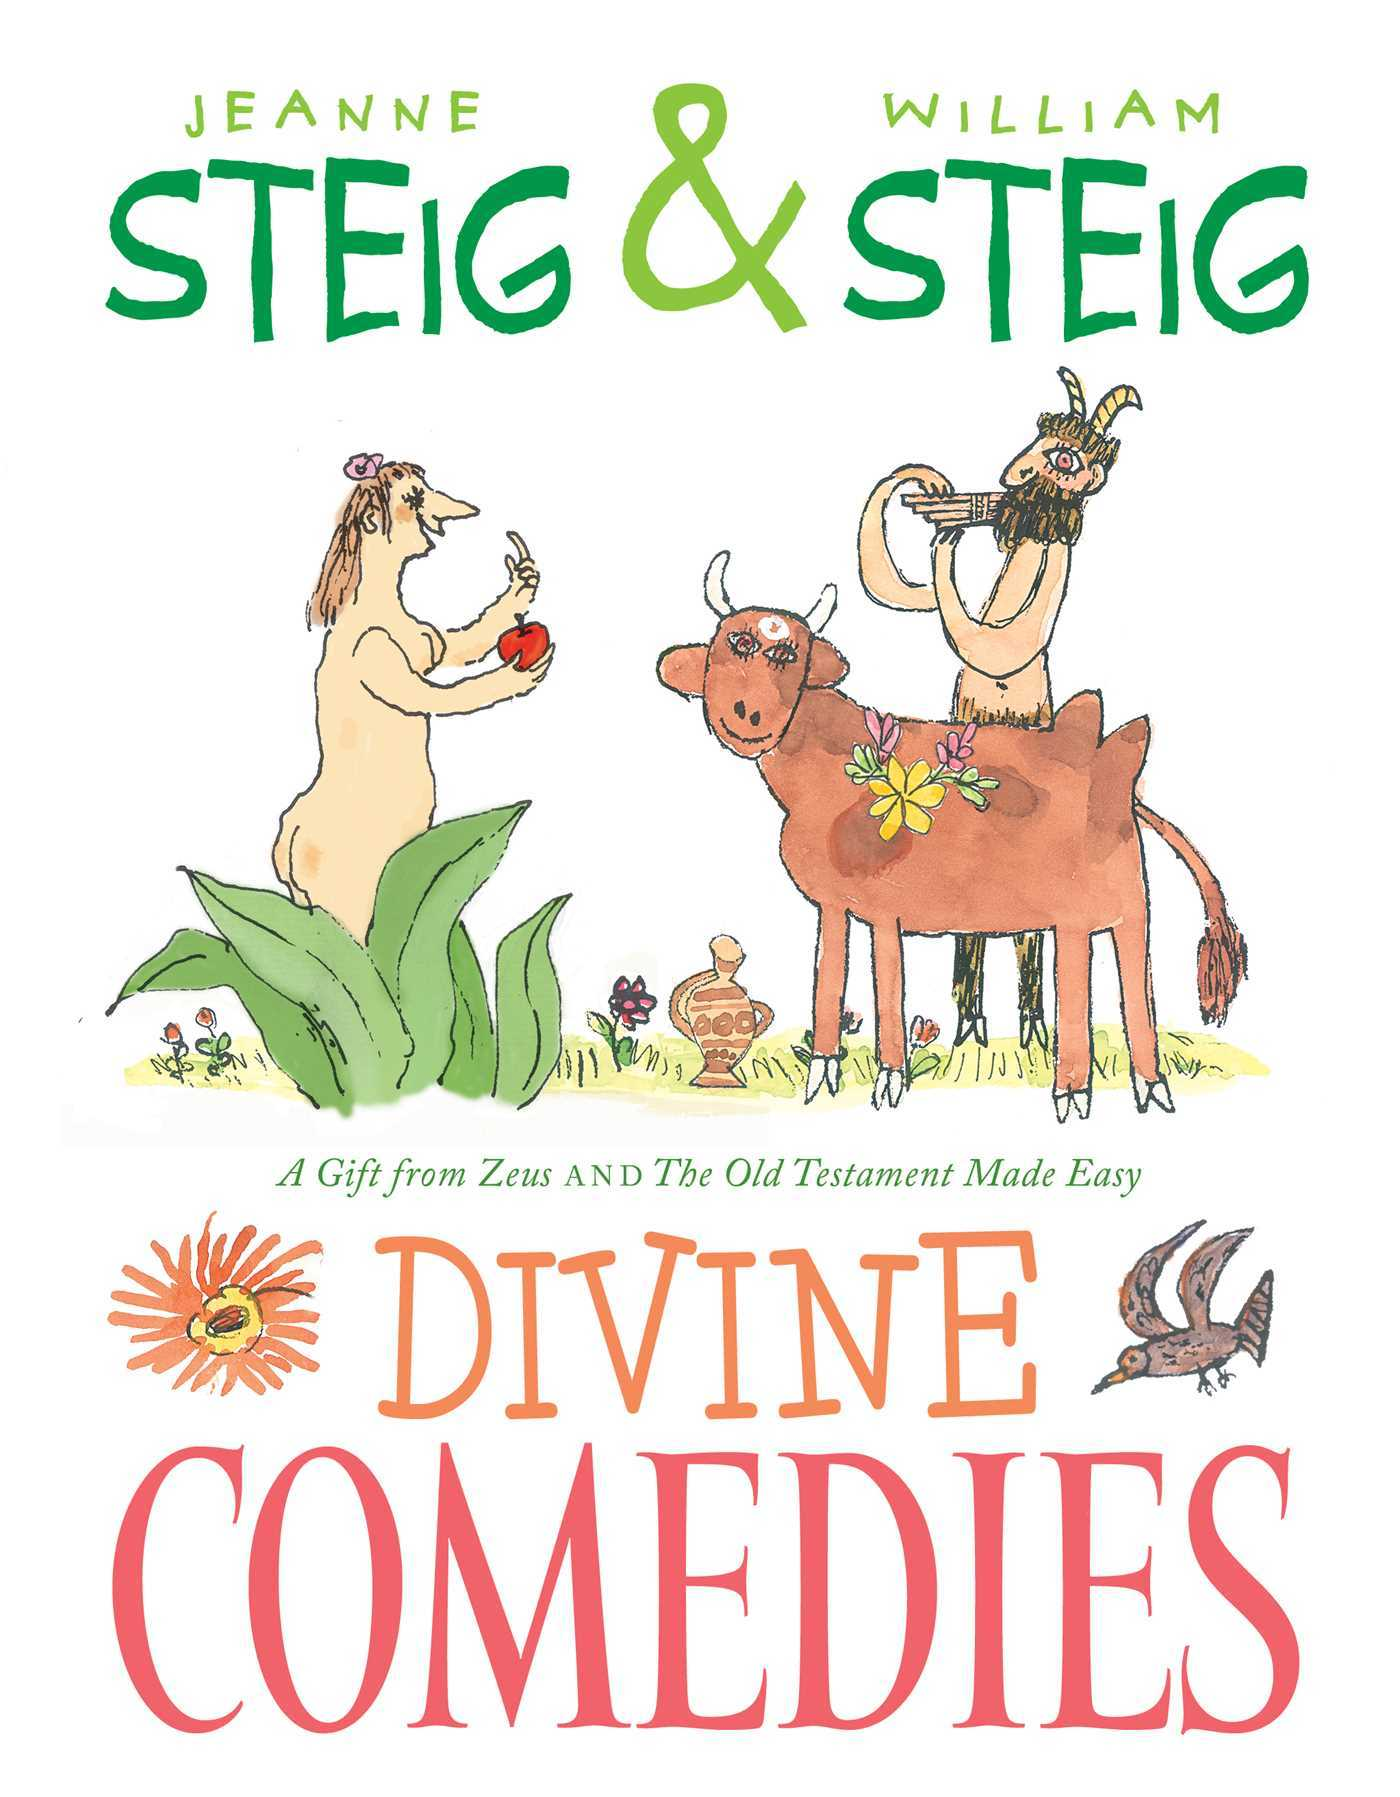 Divine Comedies: The Old Testament Made Easy and A Gift from Zeus Jeanne Steig